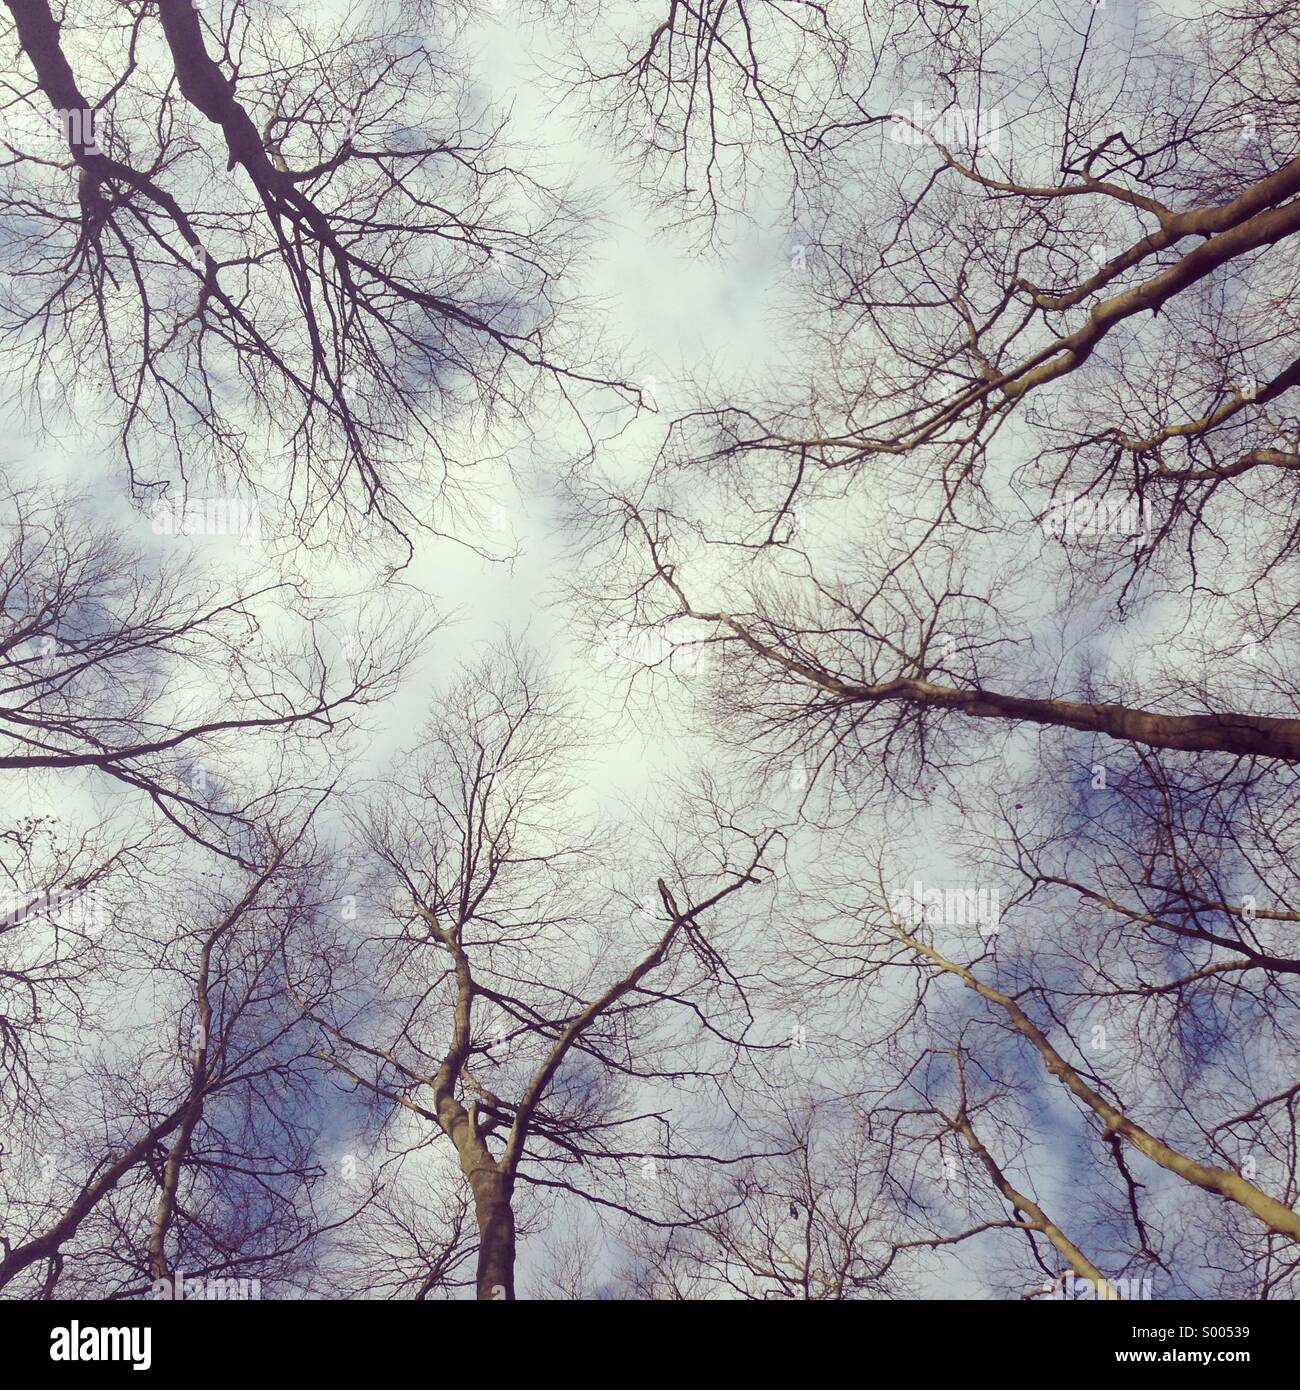 Looking up at tree tops. - Stock Image